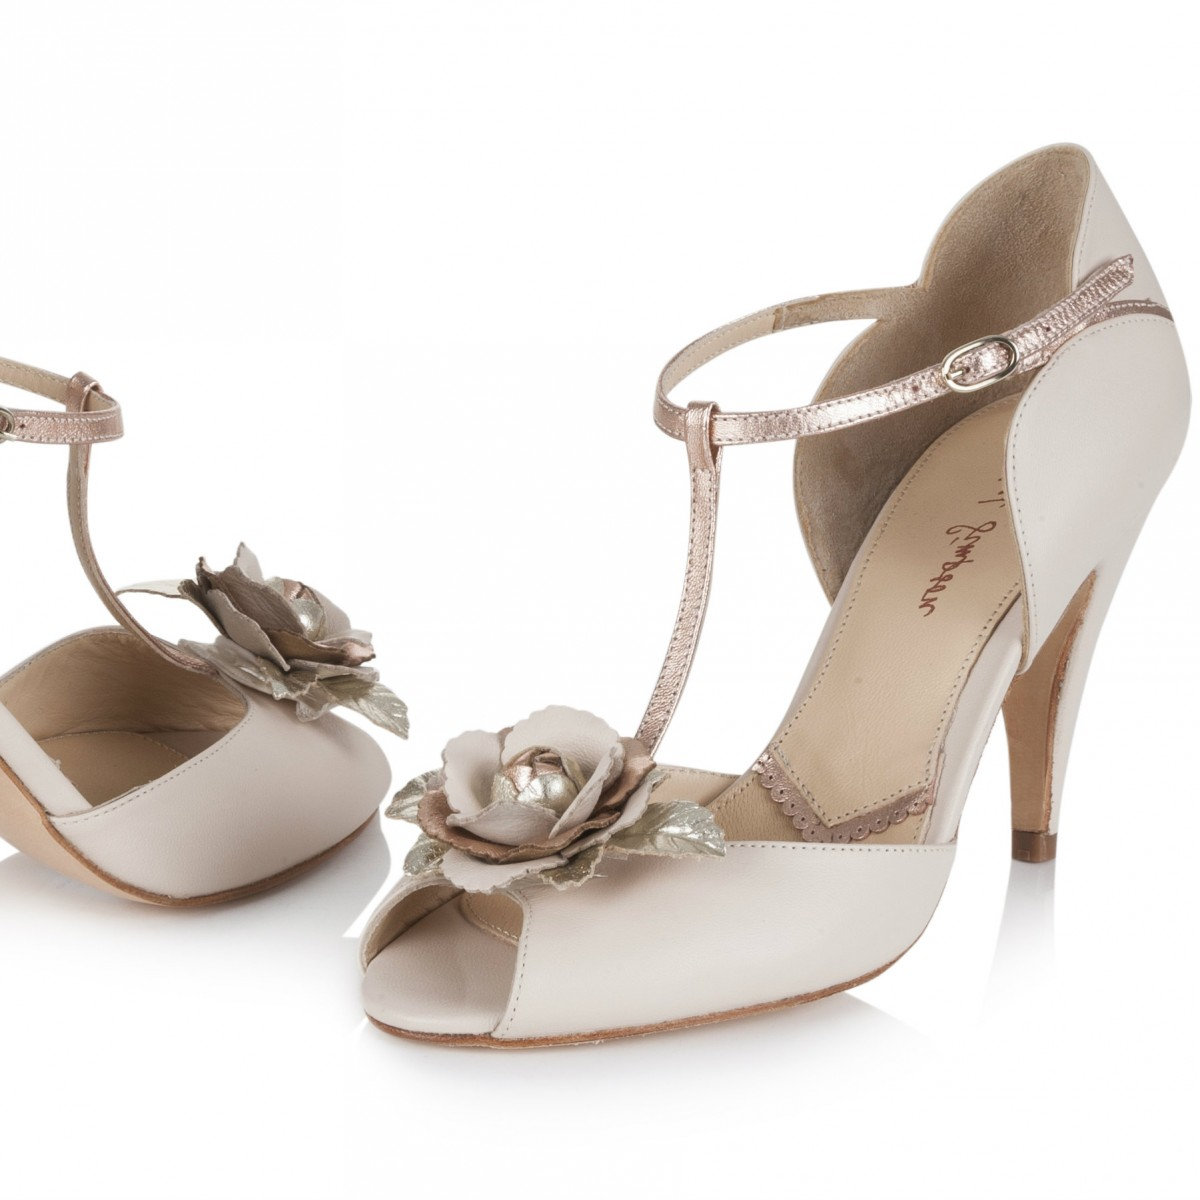 Bridal Shoes Alternative: Rachel Simpson